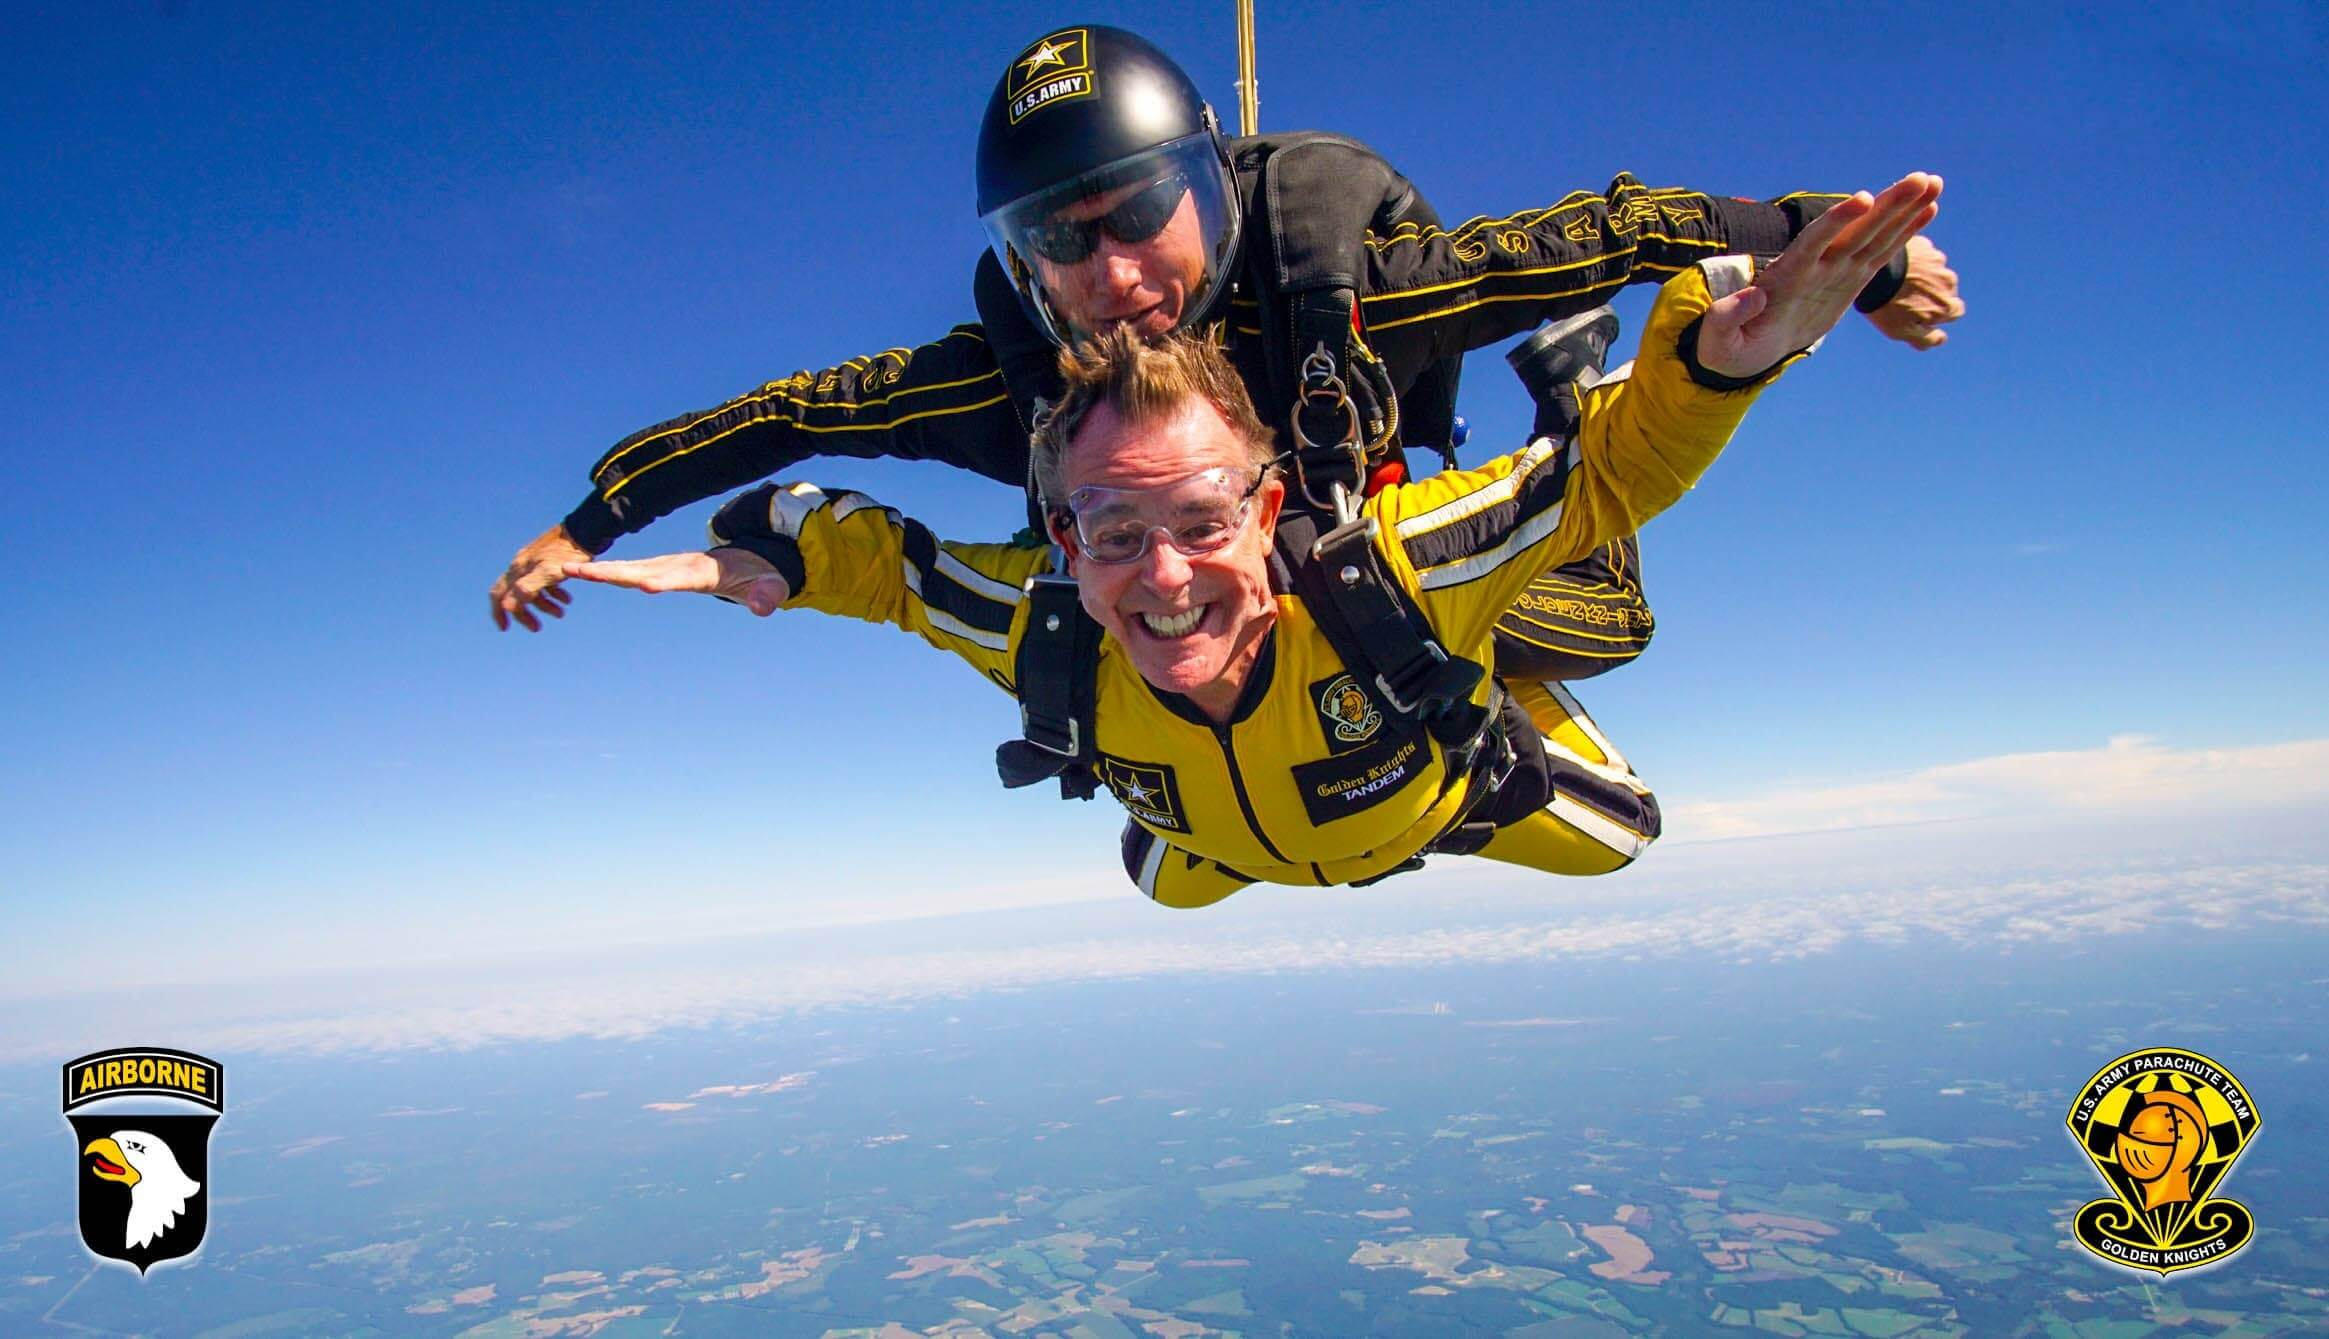 Golden Knights, Fort Bragg, Go Army, The Not Old Better Show, Paul Vogelzang, Skydiving